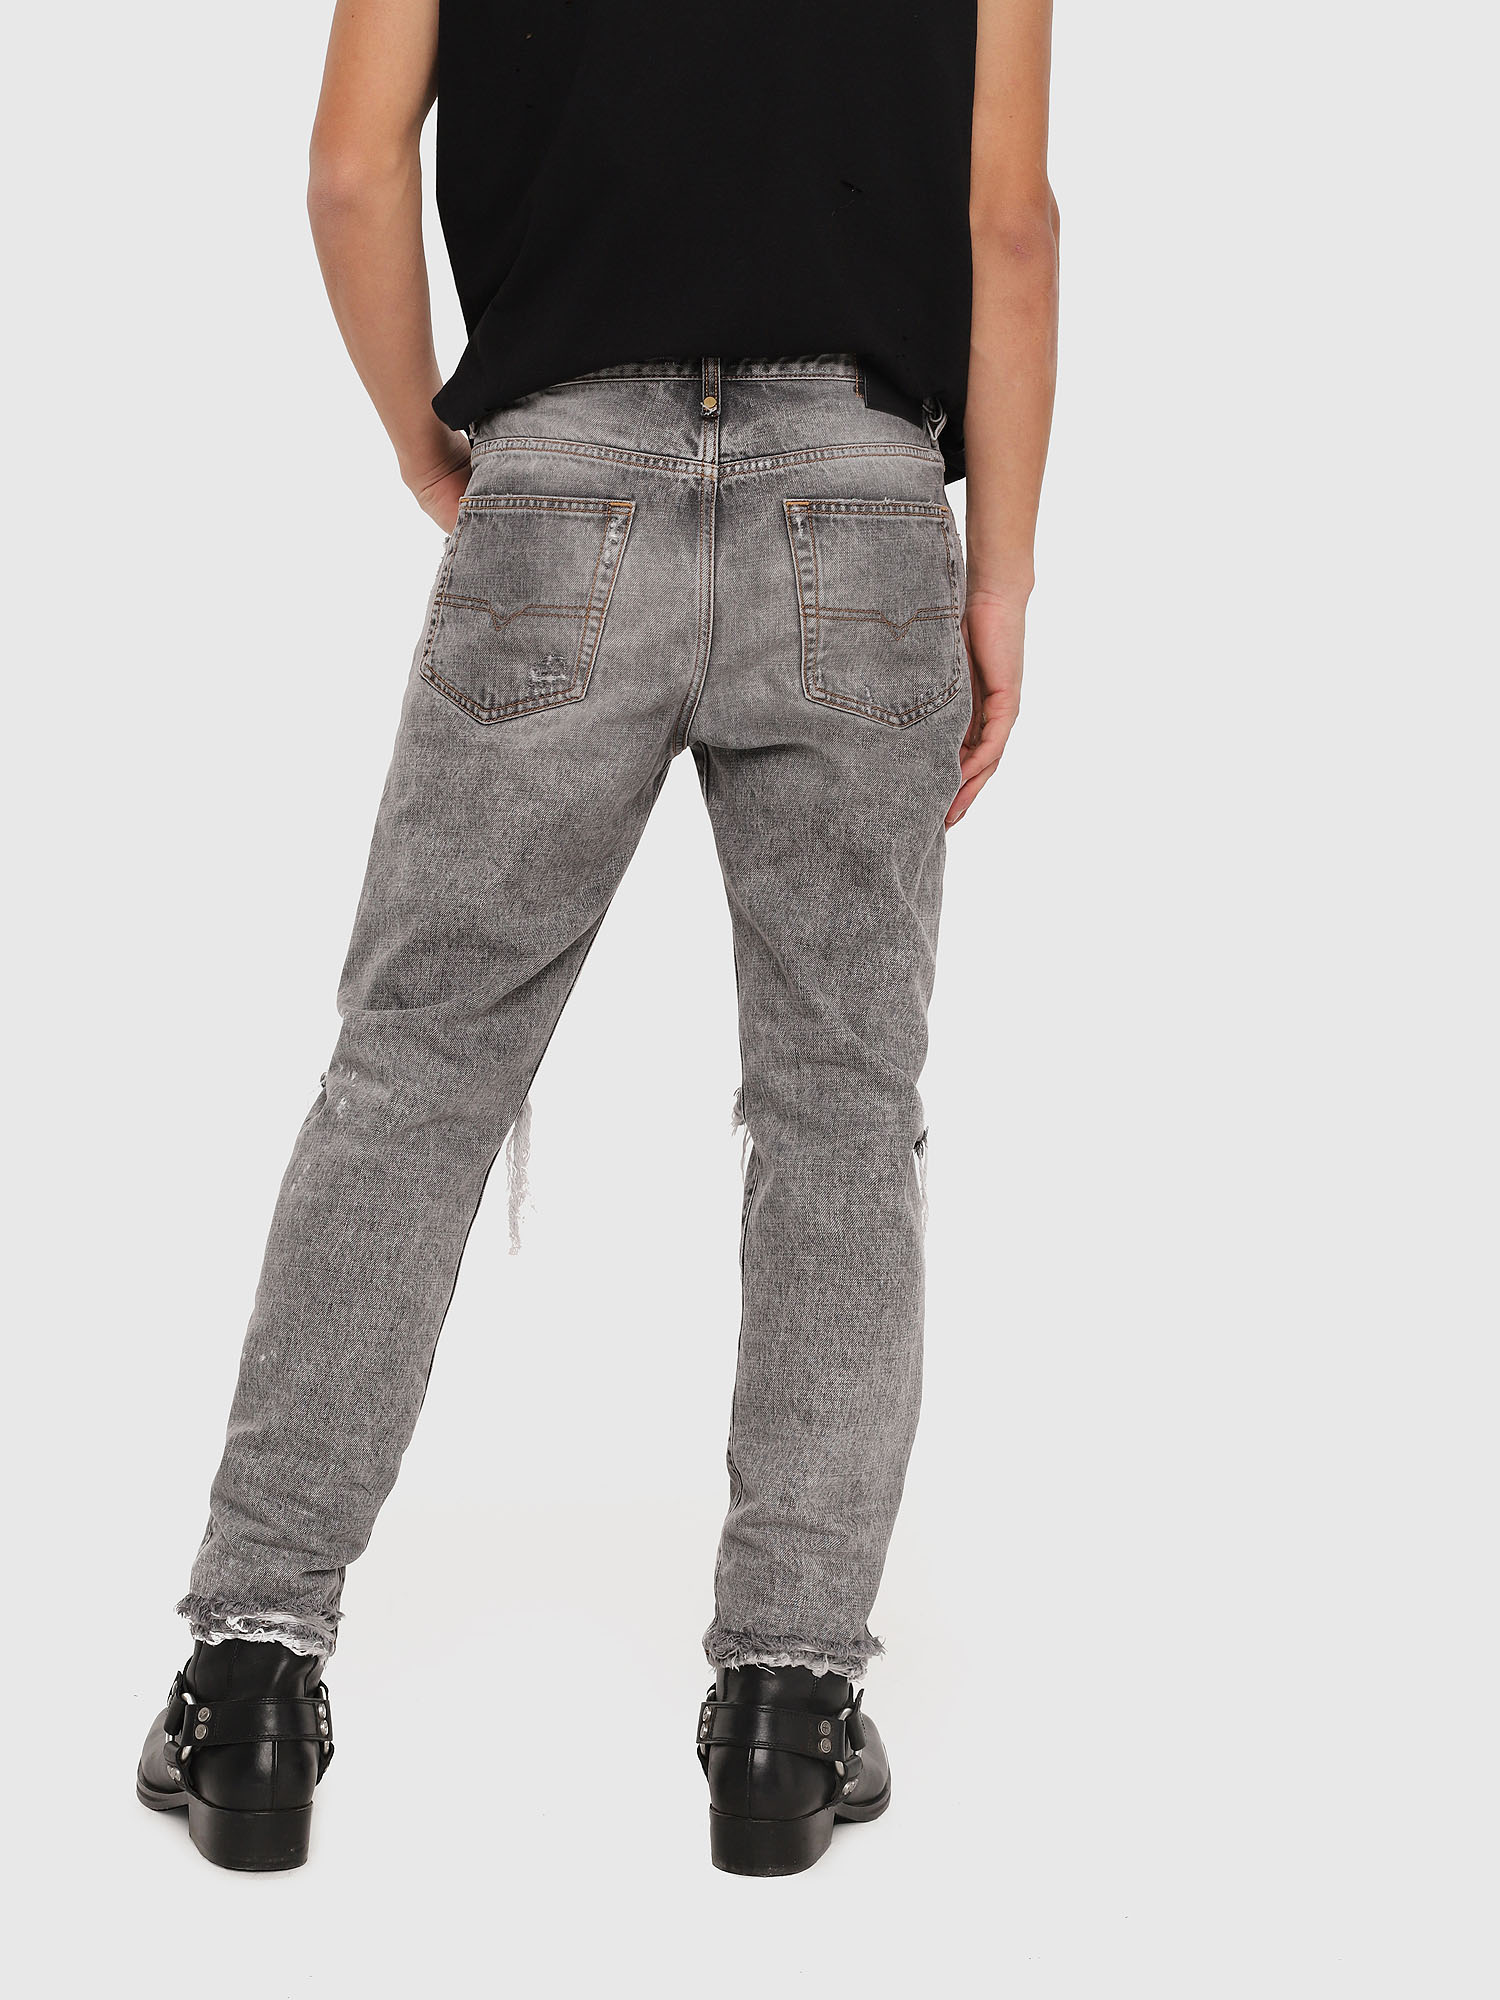 Diesel - Mharky 089AT,  - Jeans - Image 2